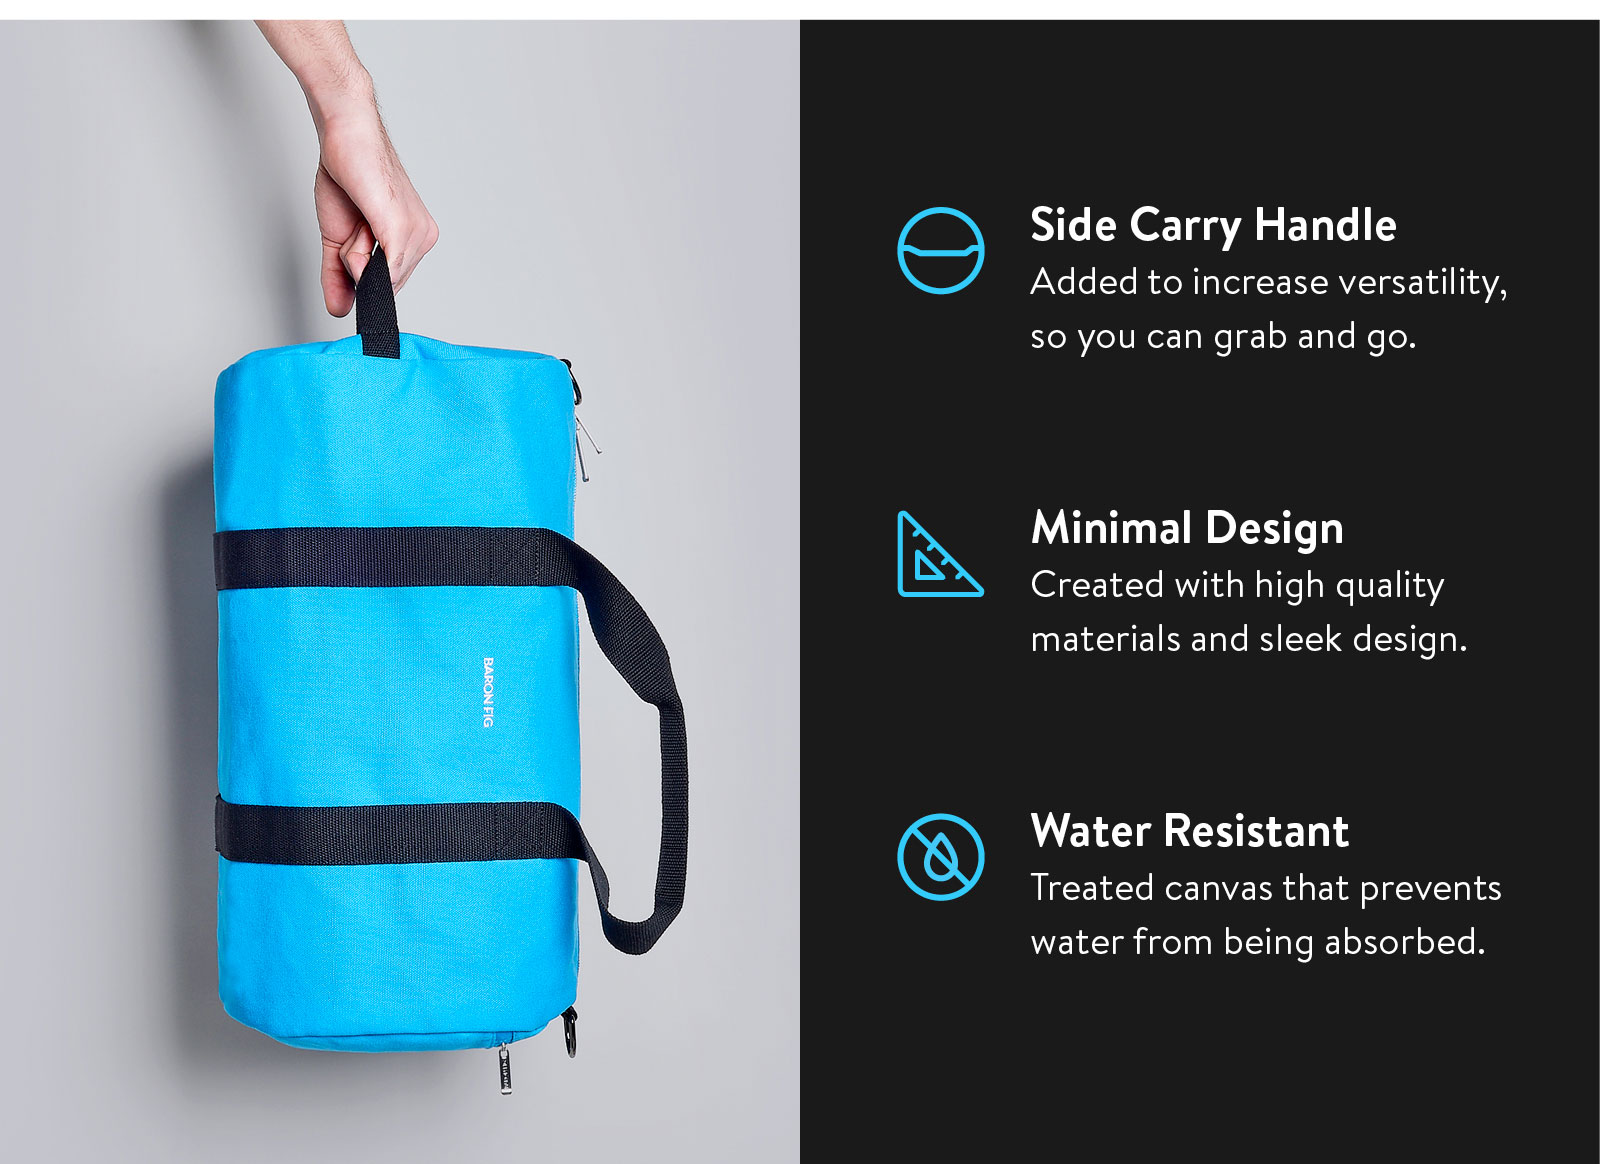 Side carry handle. Minimal design. Water resistant. See more ?